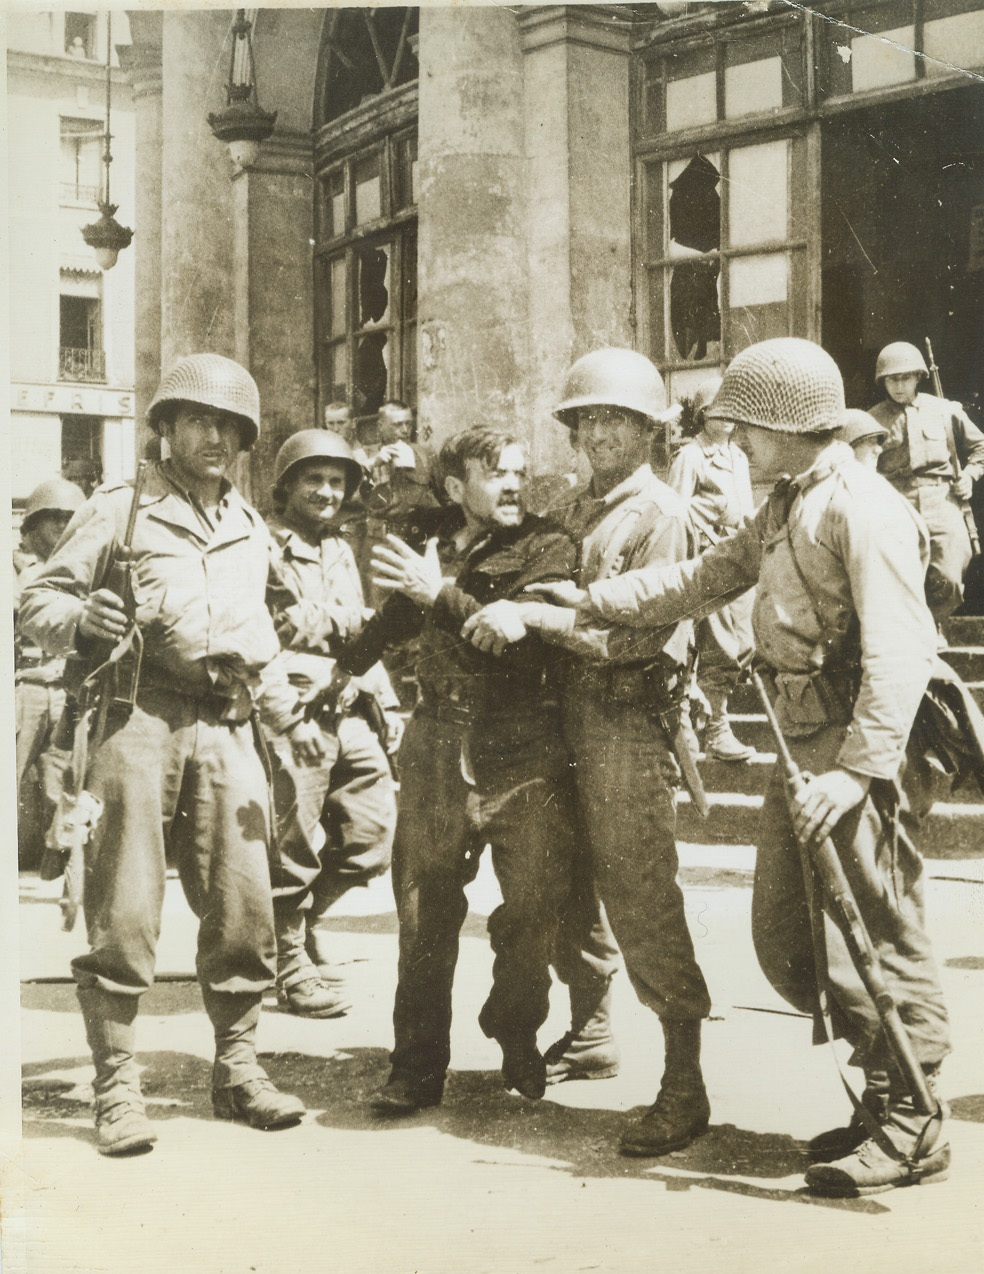 Underdog Turns on Nazis, 8/11/1944. Rennes, France—While American soldiers restrain him, this French patriot struggles to free himself and vent his wrath on disarmed Nazi prisoners of war gathered on the Rennes City Hall steps. Finally freed of Nazi oppression, he fought to get at those who were responsible for the tyrannical treatment.  Credit: ACME;